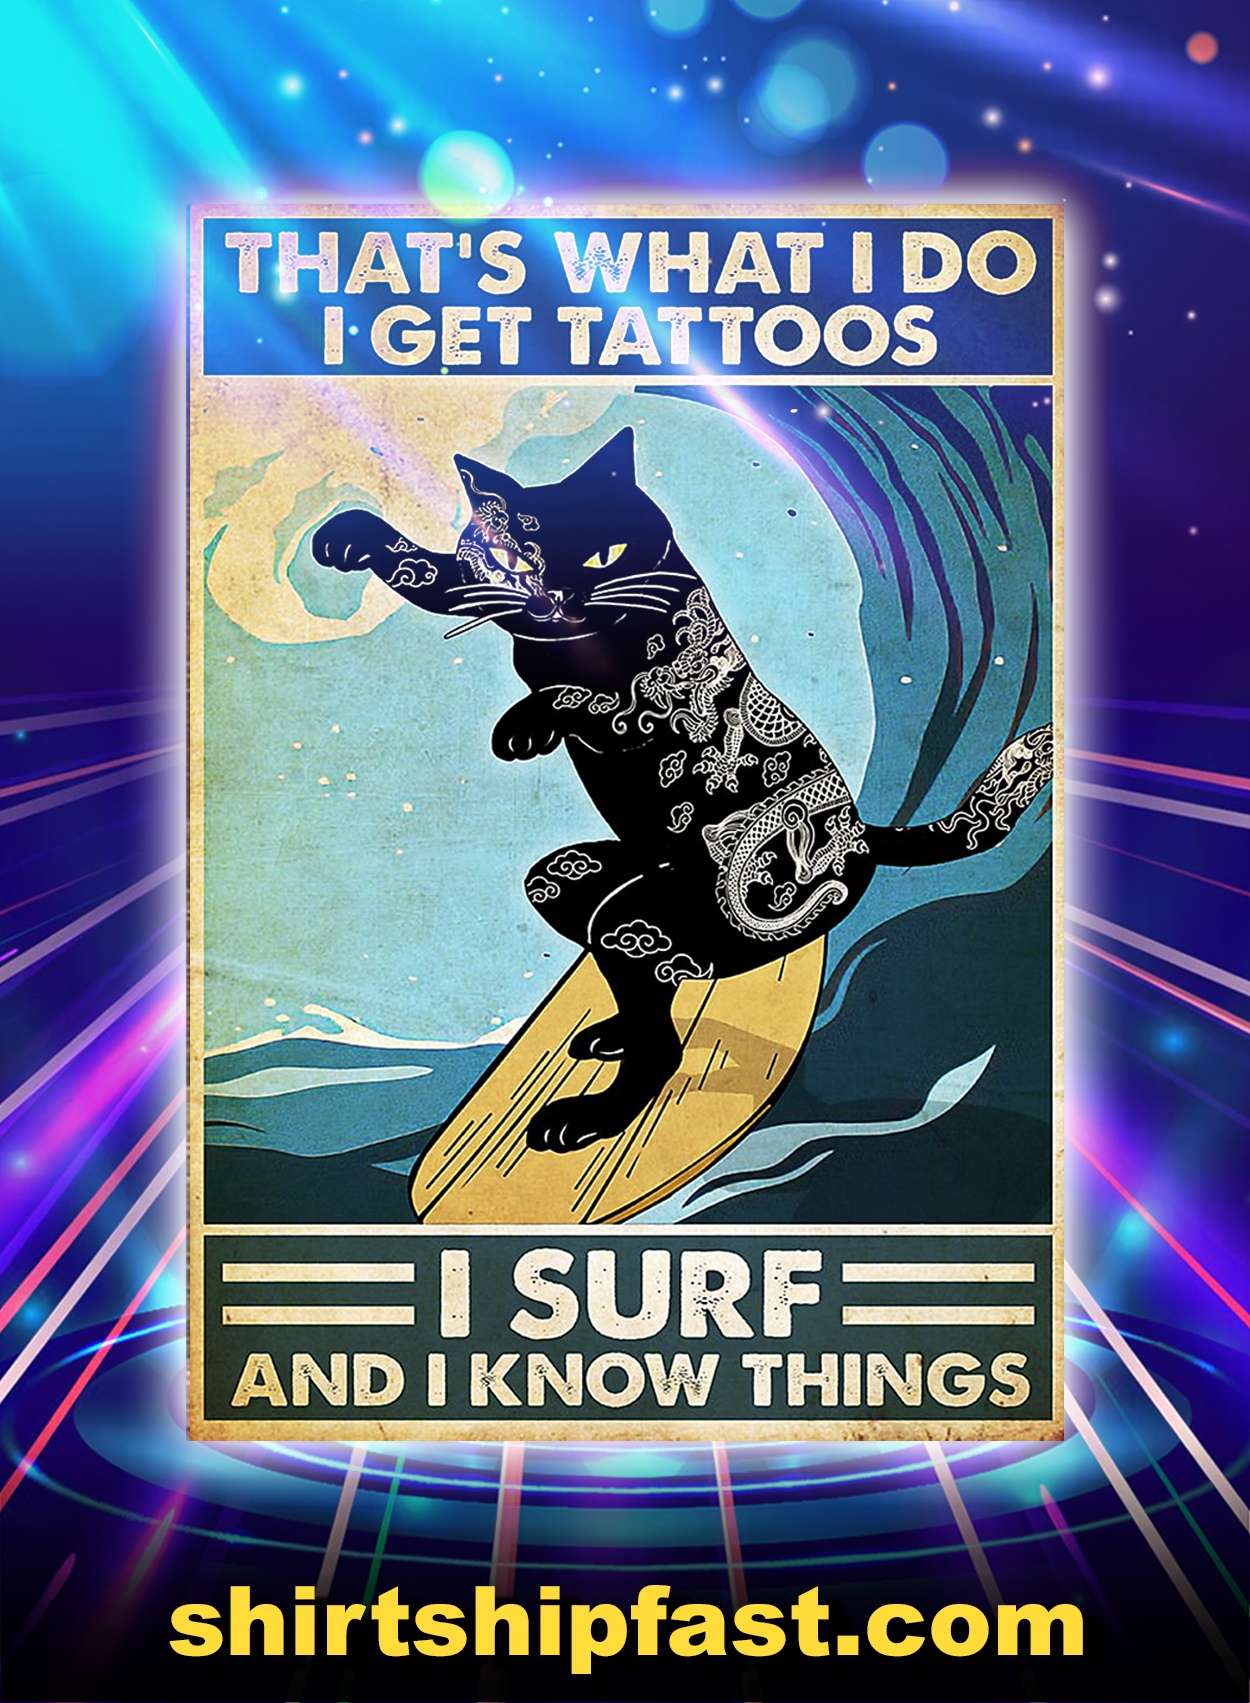 Cat Surfing That's What I Do I Get Tattoos I Surf And I Know Things Poster - A2